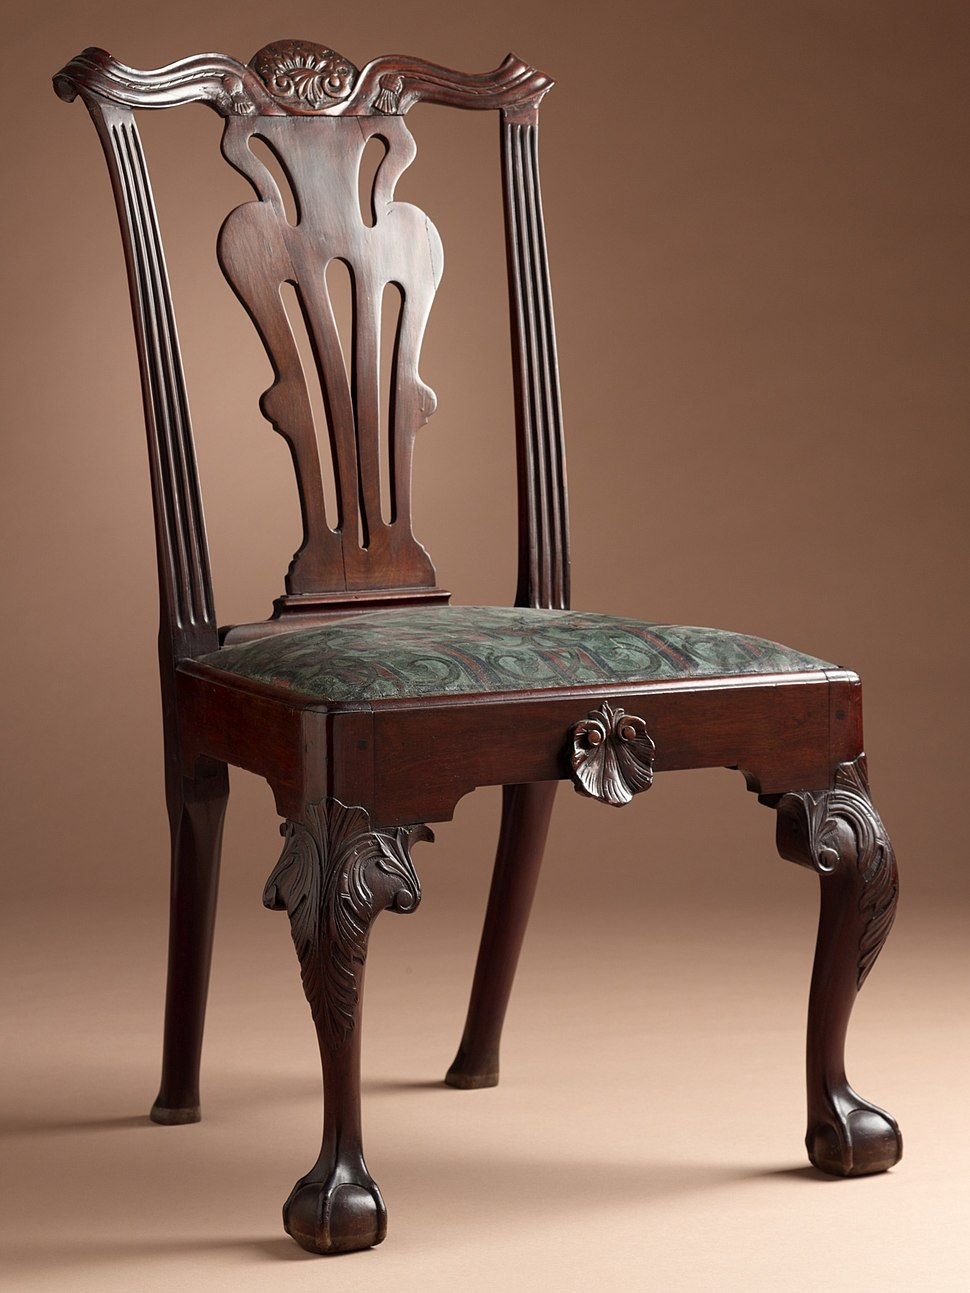 Side Chair with Baluster Splat and Tassel-Carved Crest Rail LACMA M.2006.51.45